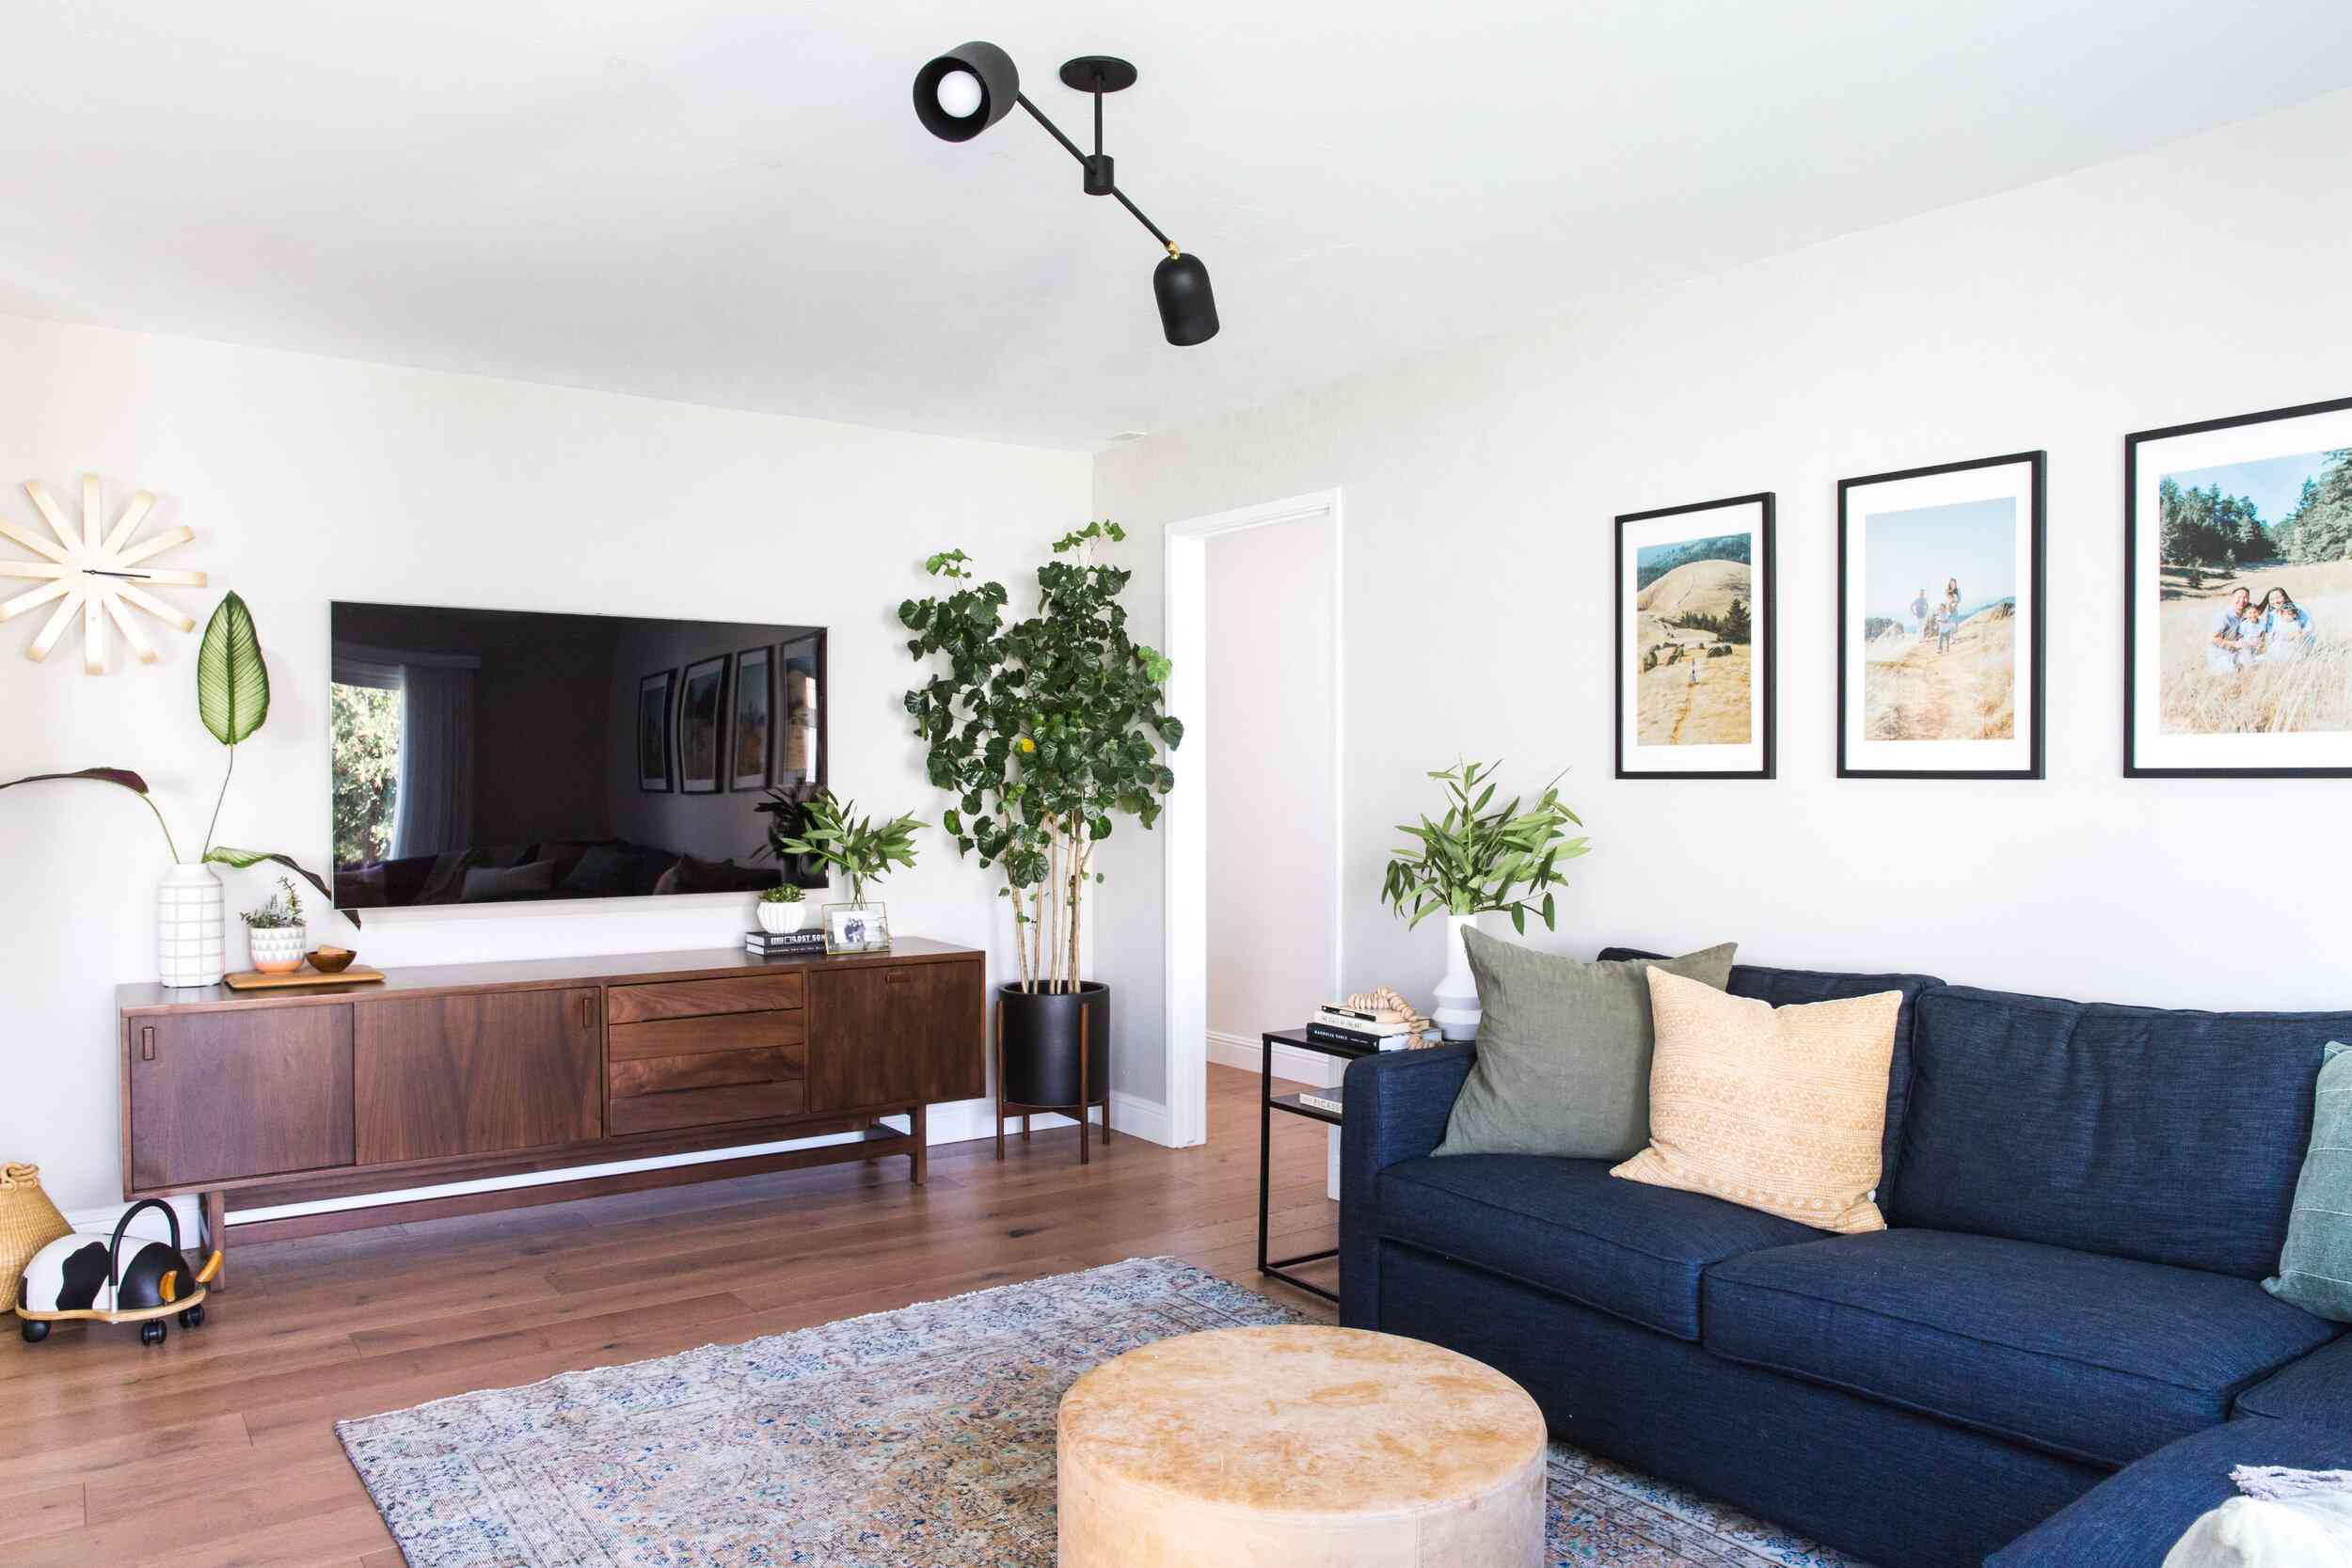 How To Decorate A Small Living Room, How To Decorate Small Living Room